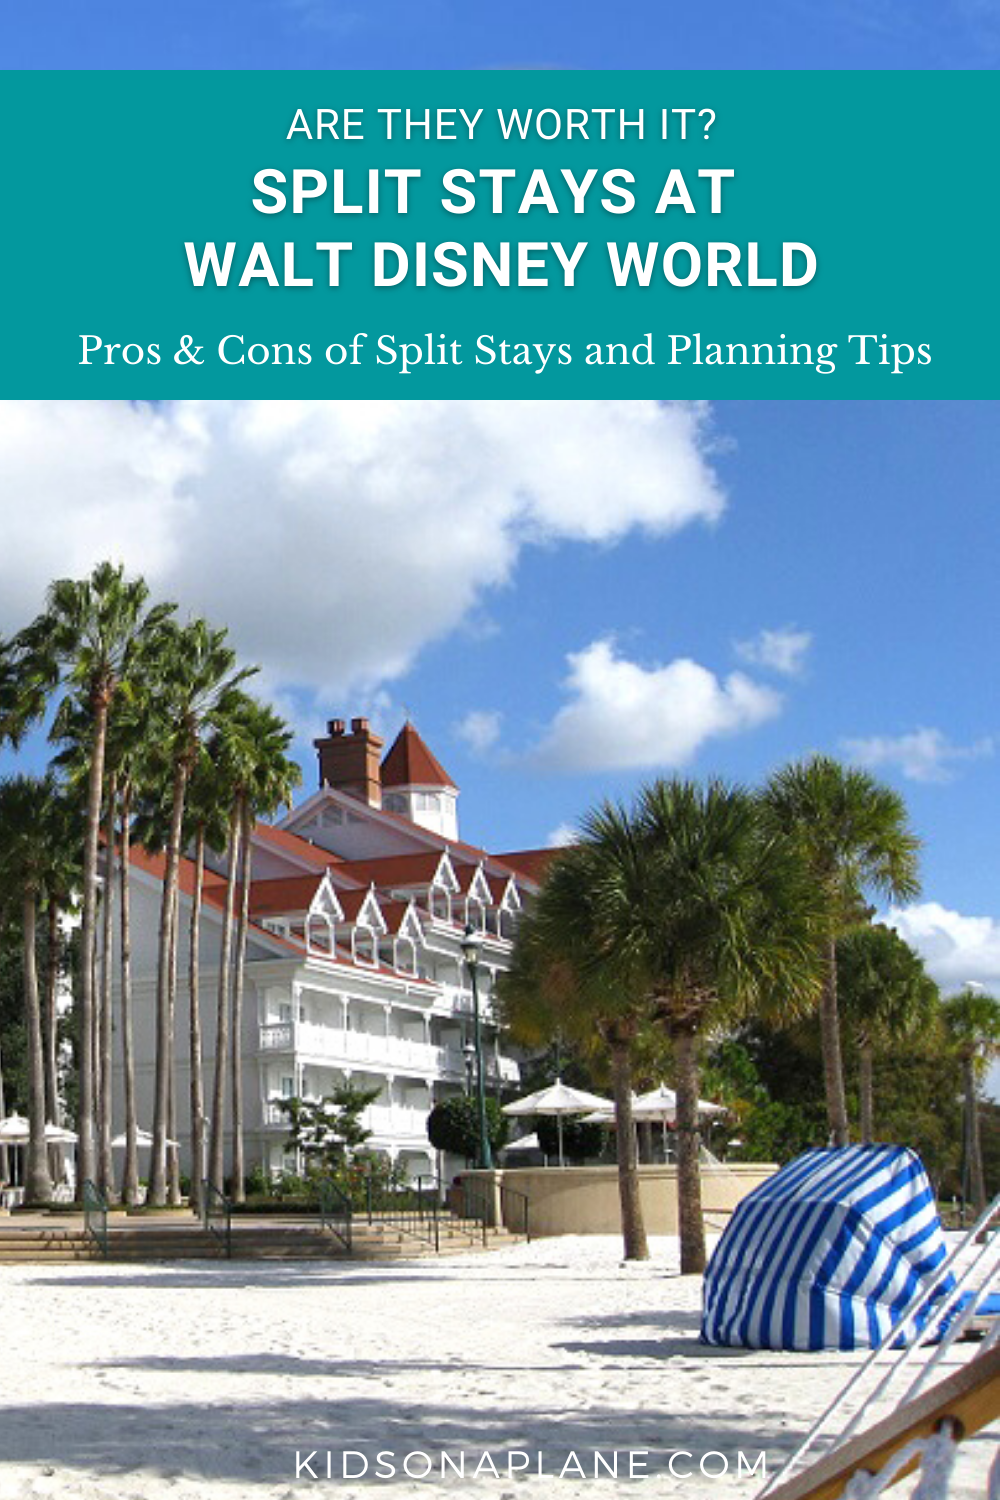 Split Stays at Disney World - Pros and Cons and Planning Tips for Families